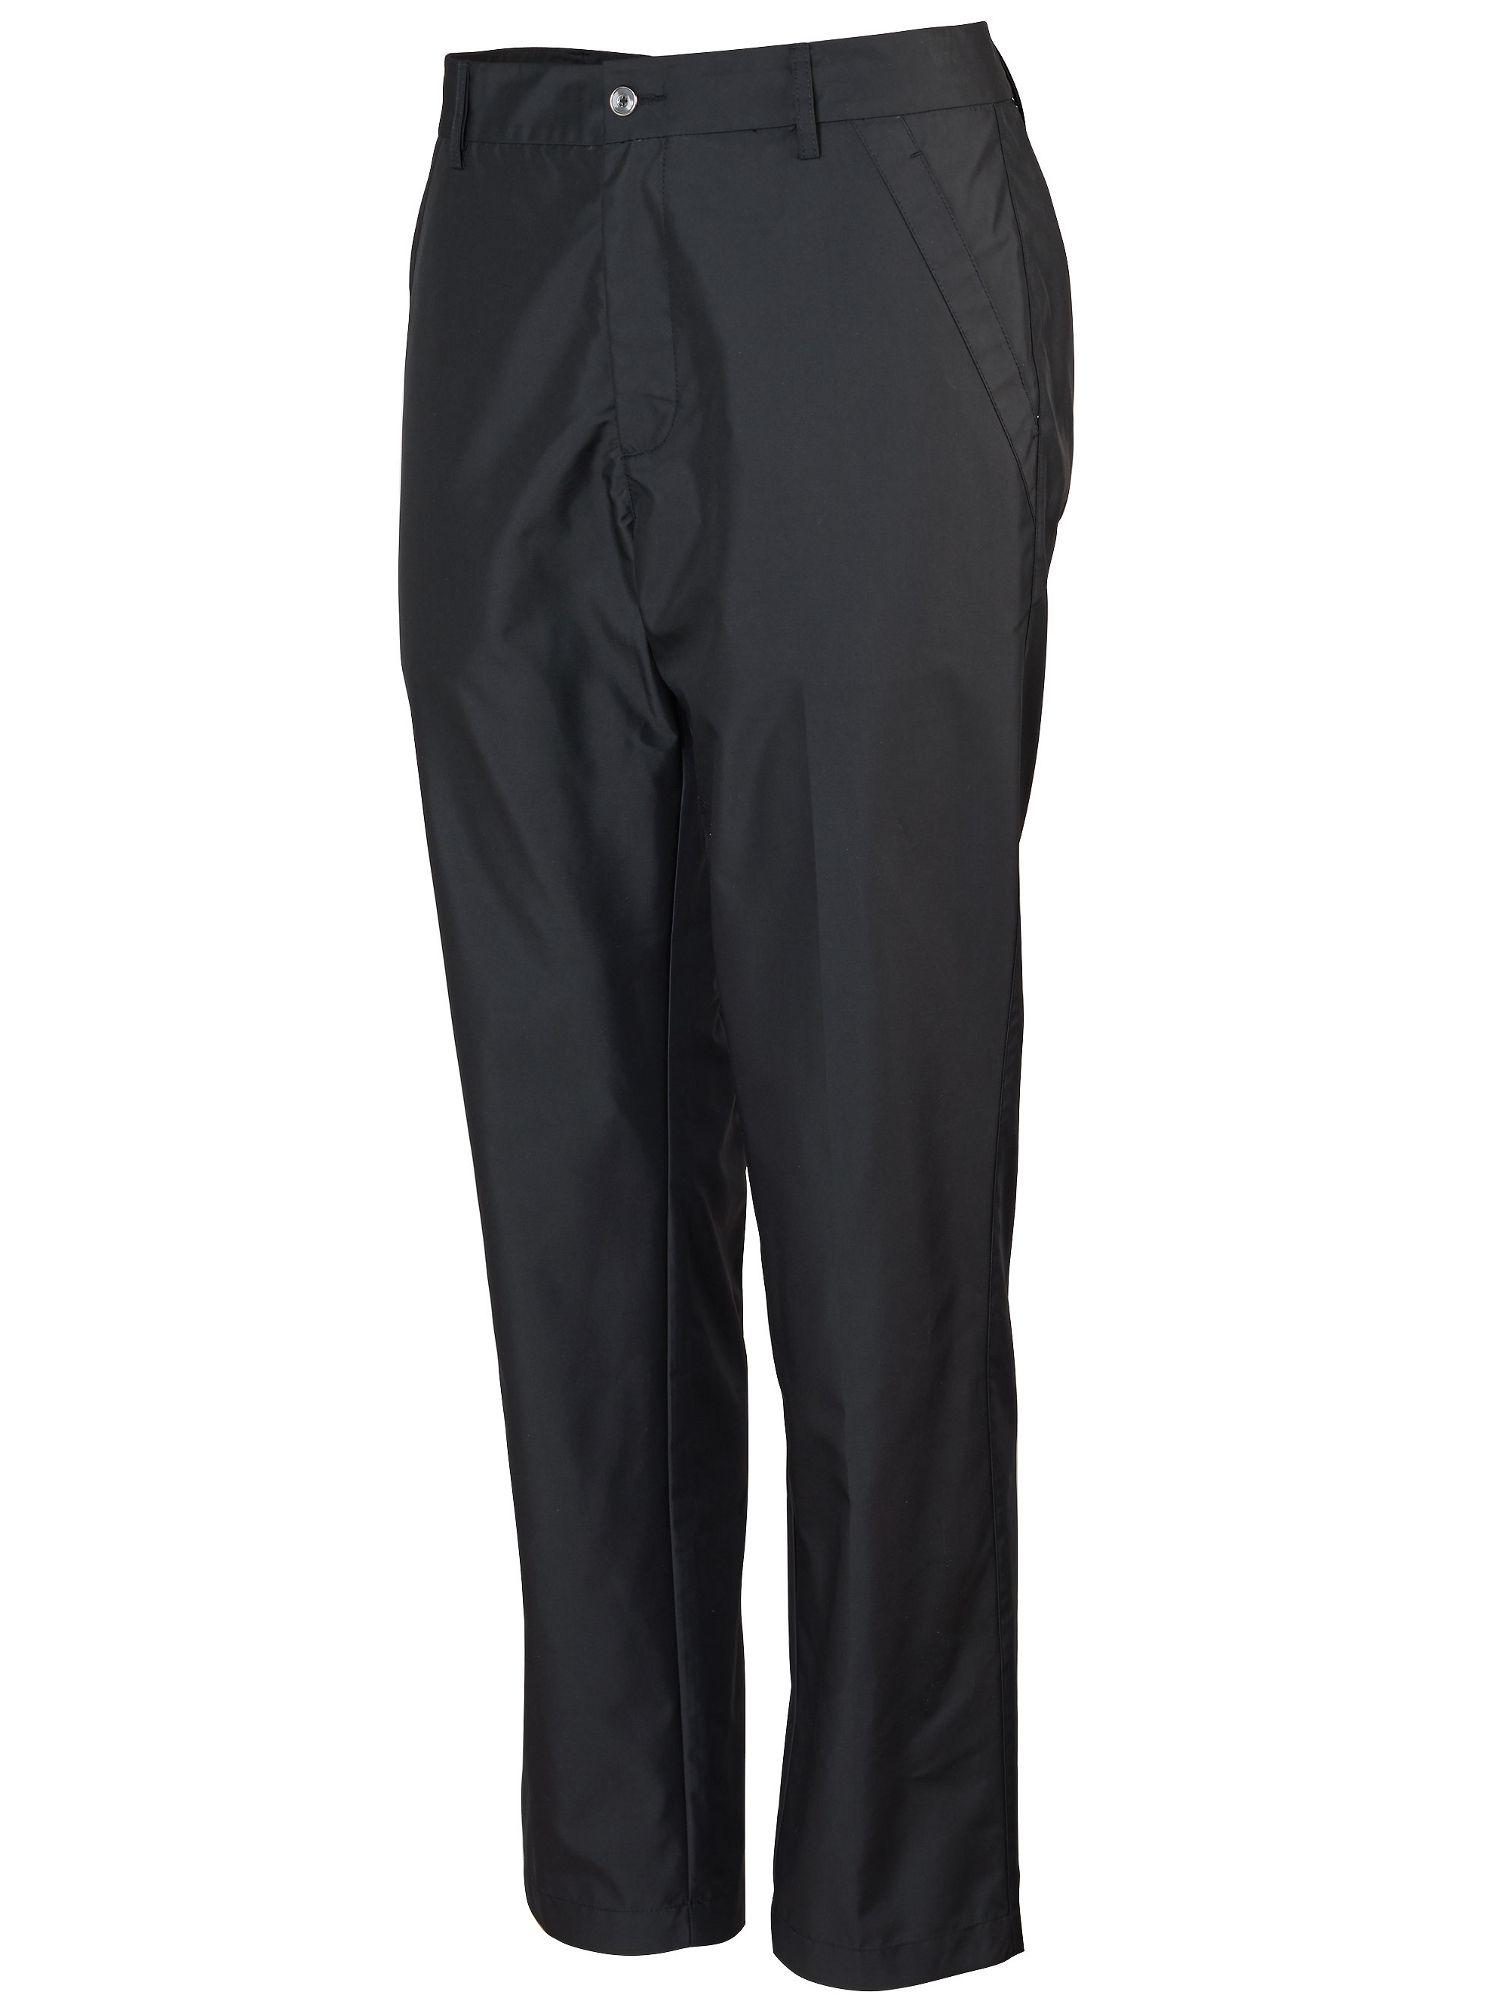 Lux casual weather trousers